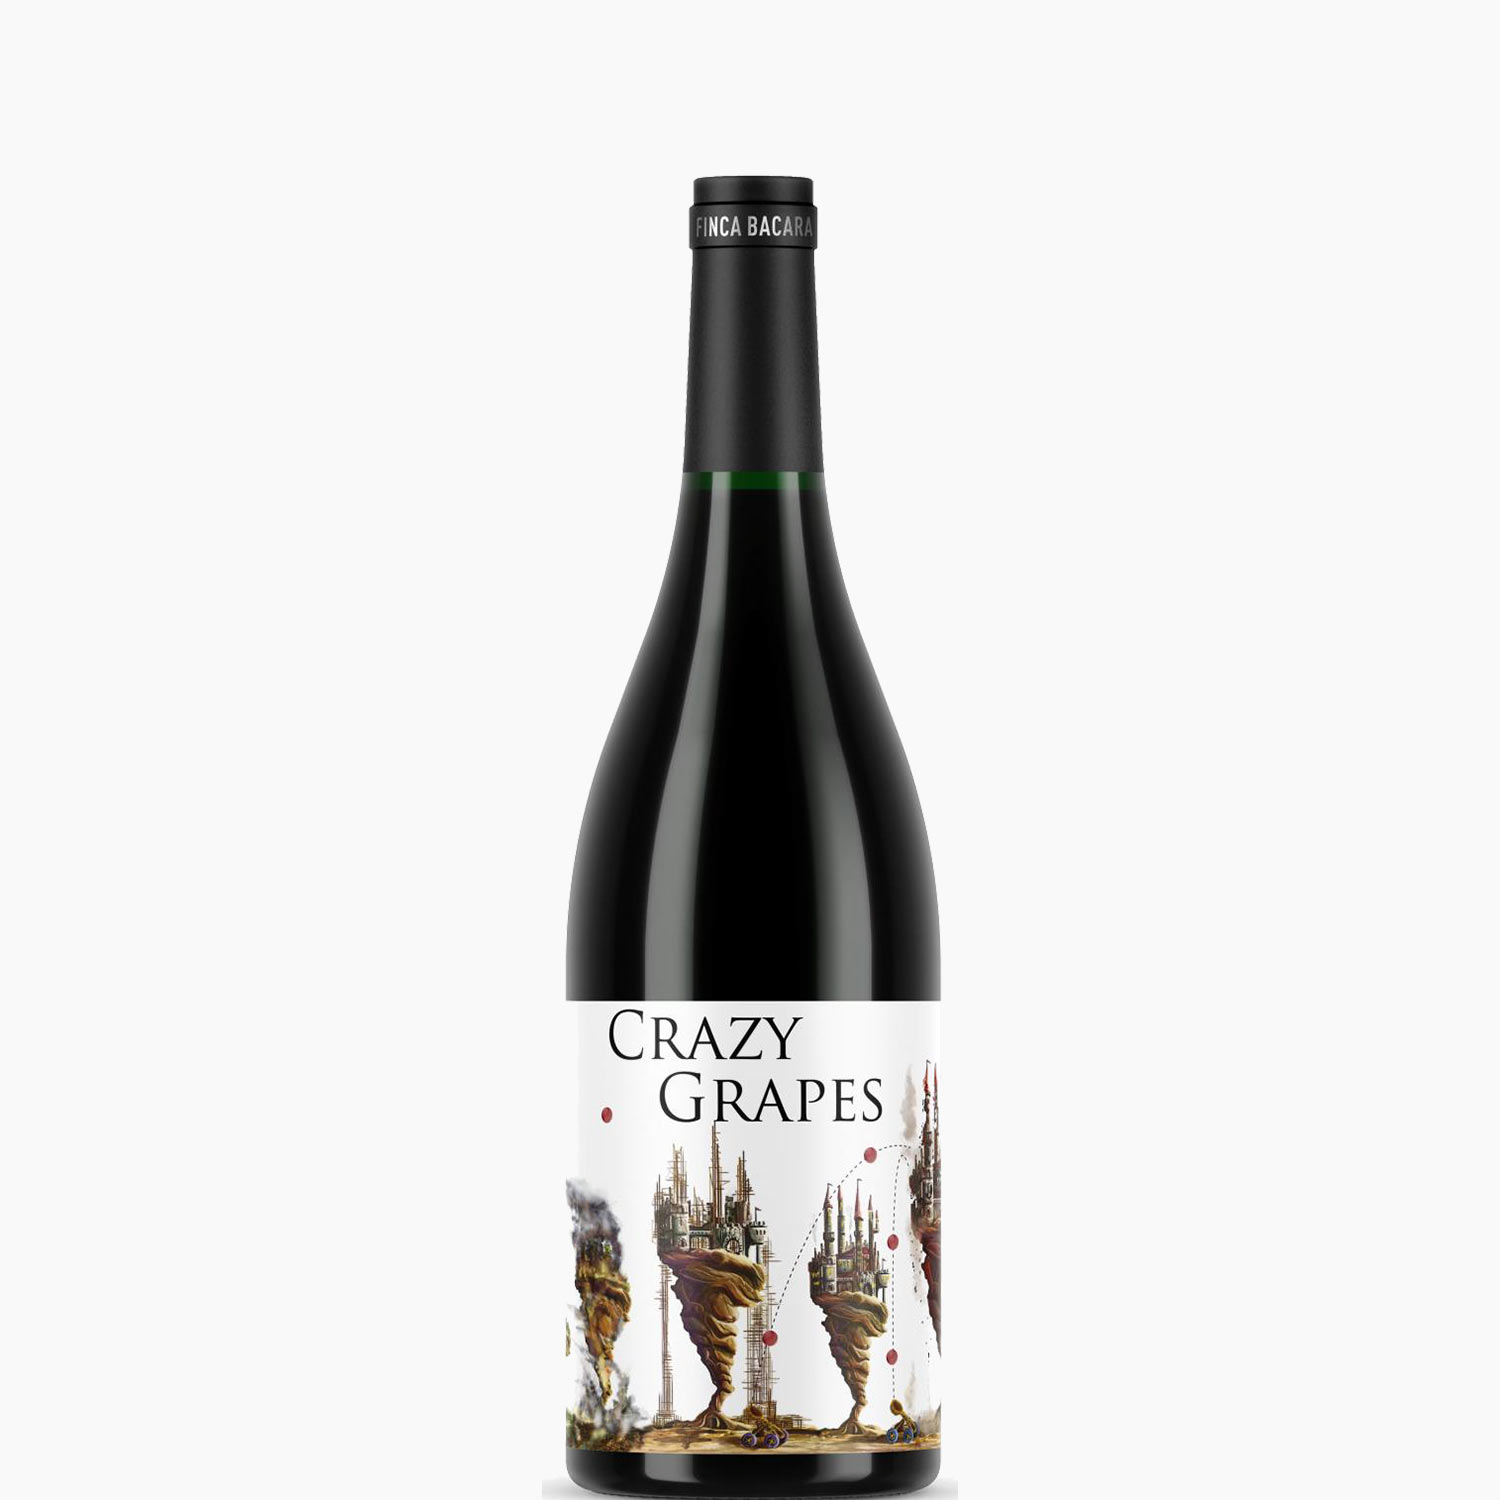 Crazy_Grapes